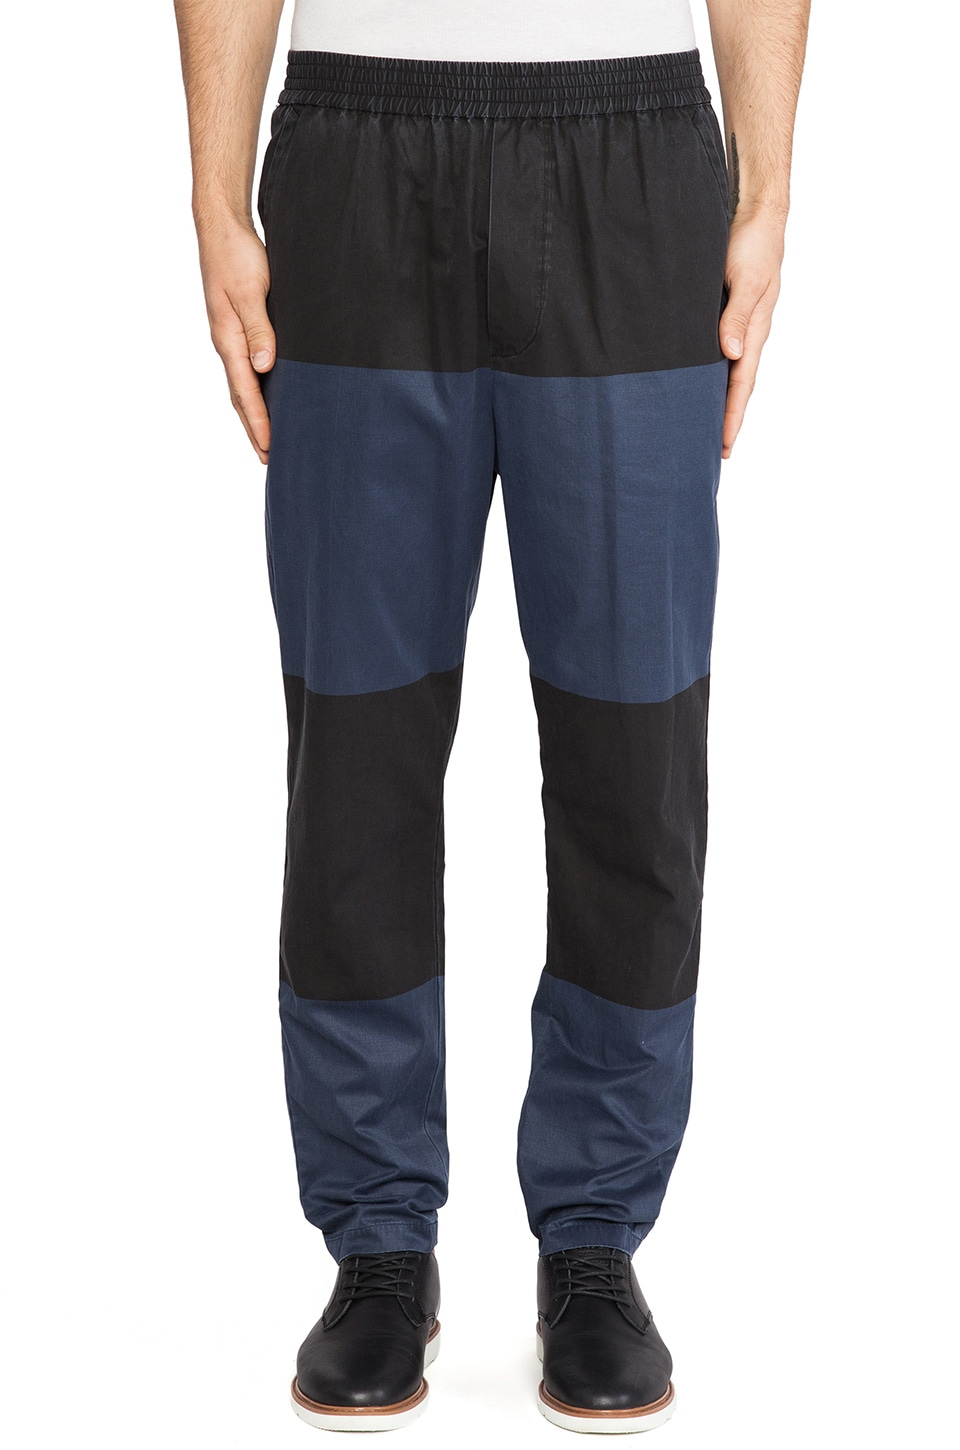 Wood Wood Lavalle Pant in Black/Blue